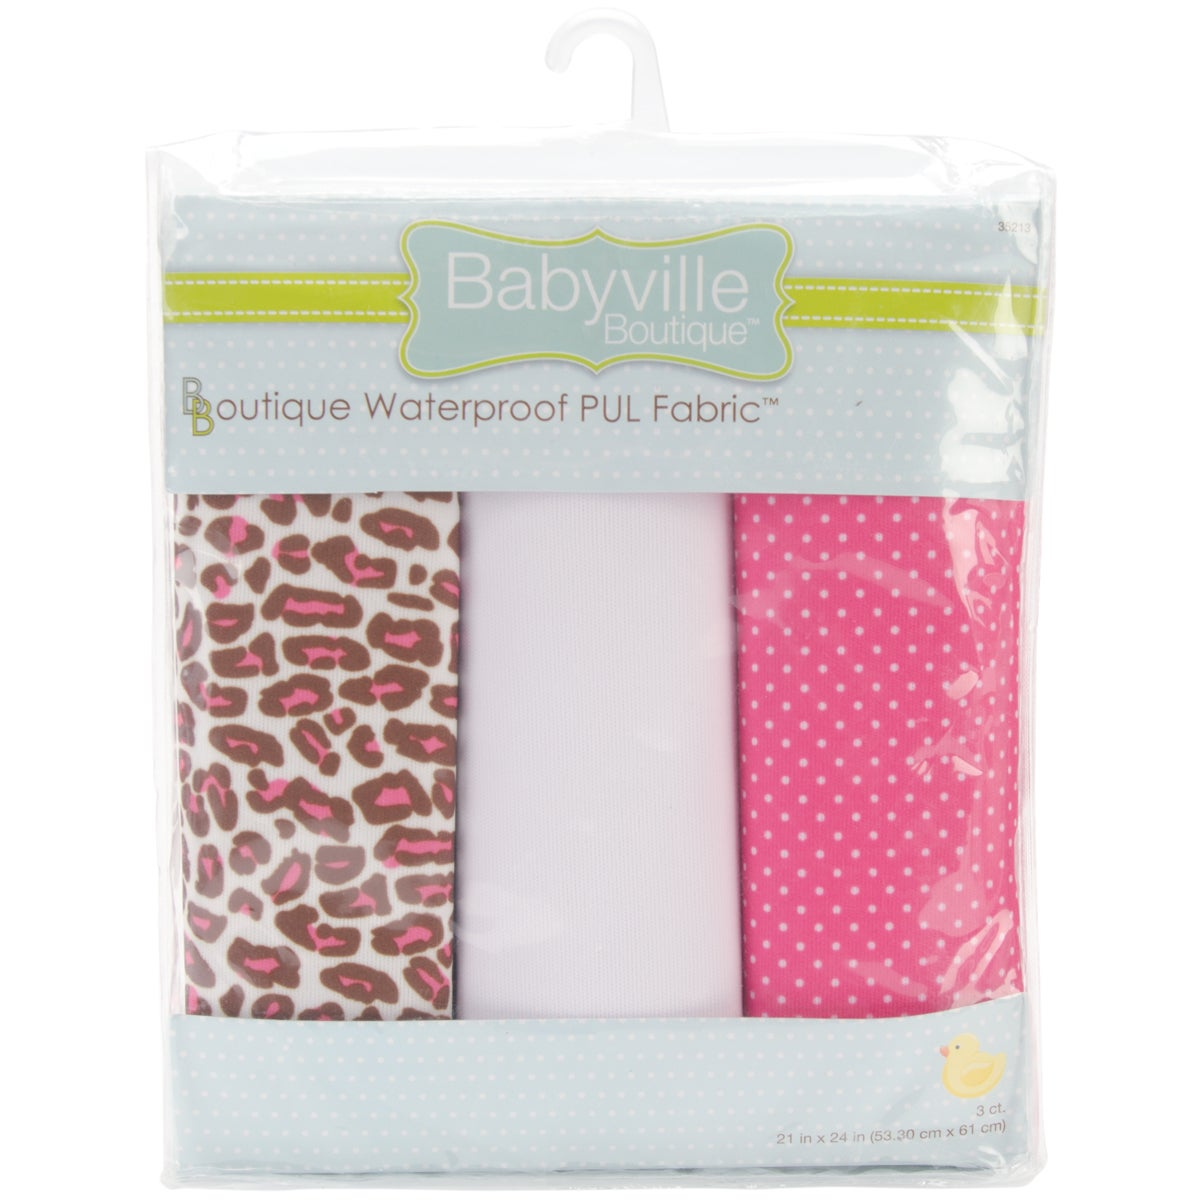 "Babyville Waterproof Diaper Fabric 21""x24"" Cuts 3/Pkg-PUL Sassy Dots & Sassy Cheetah"